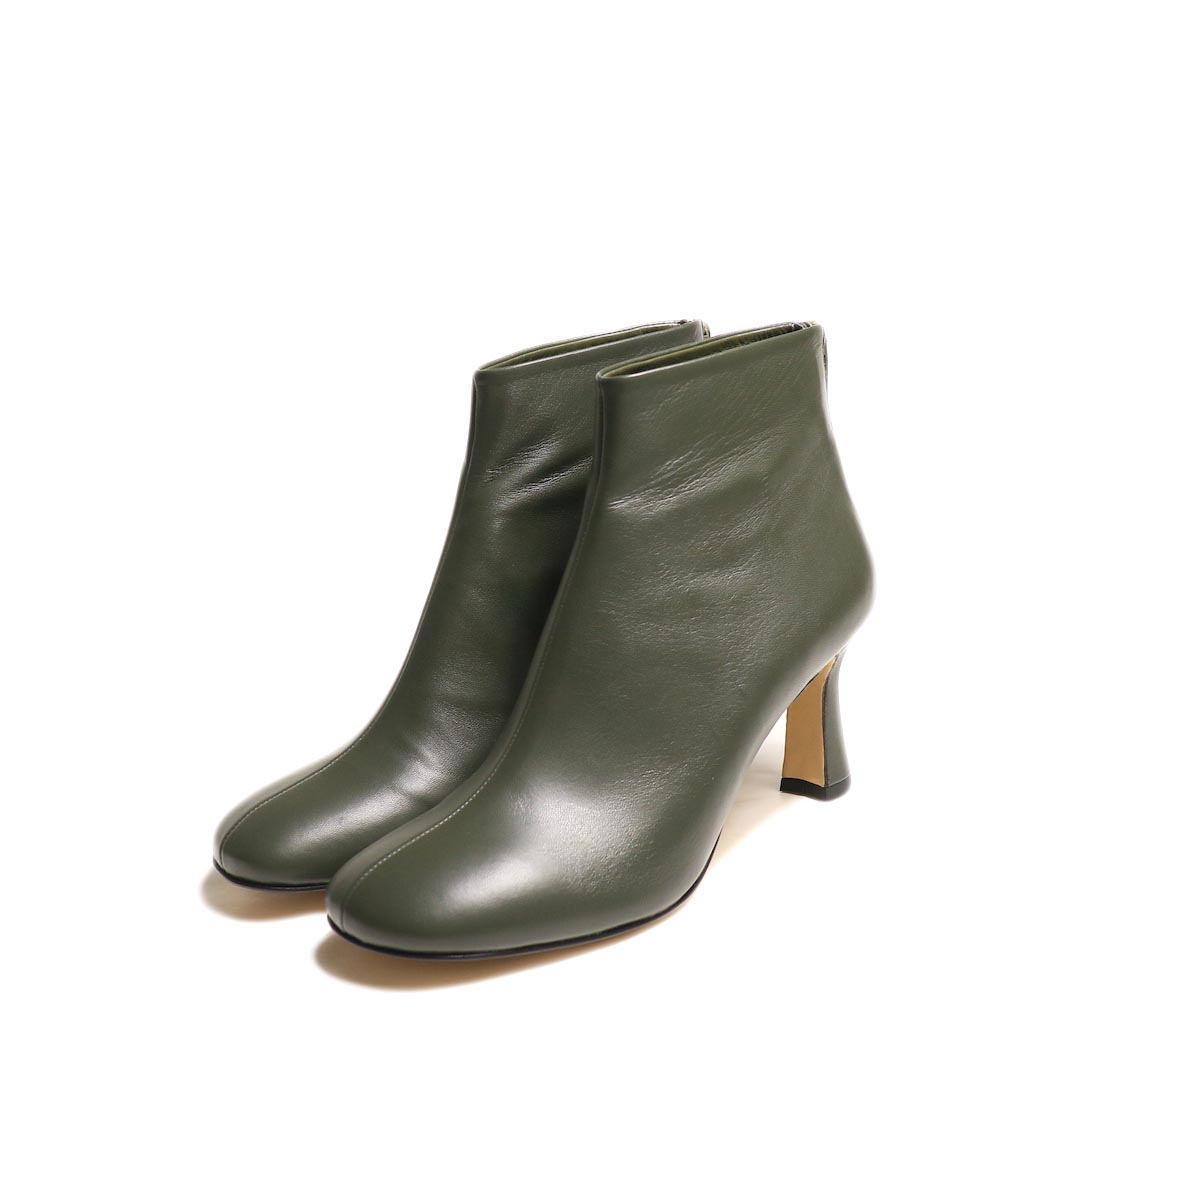 JANE SMITH / SHORT BOOTS -Khaki